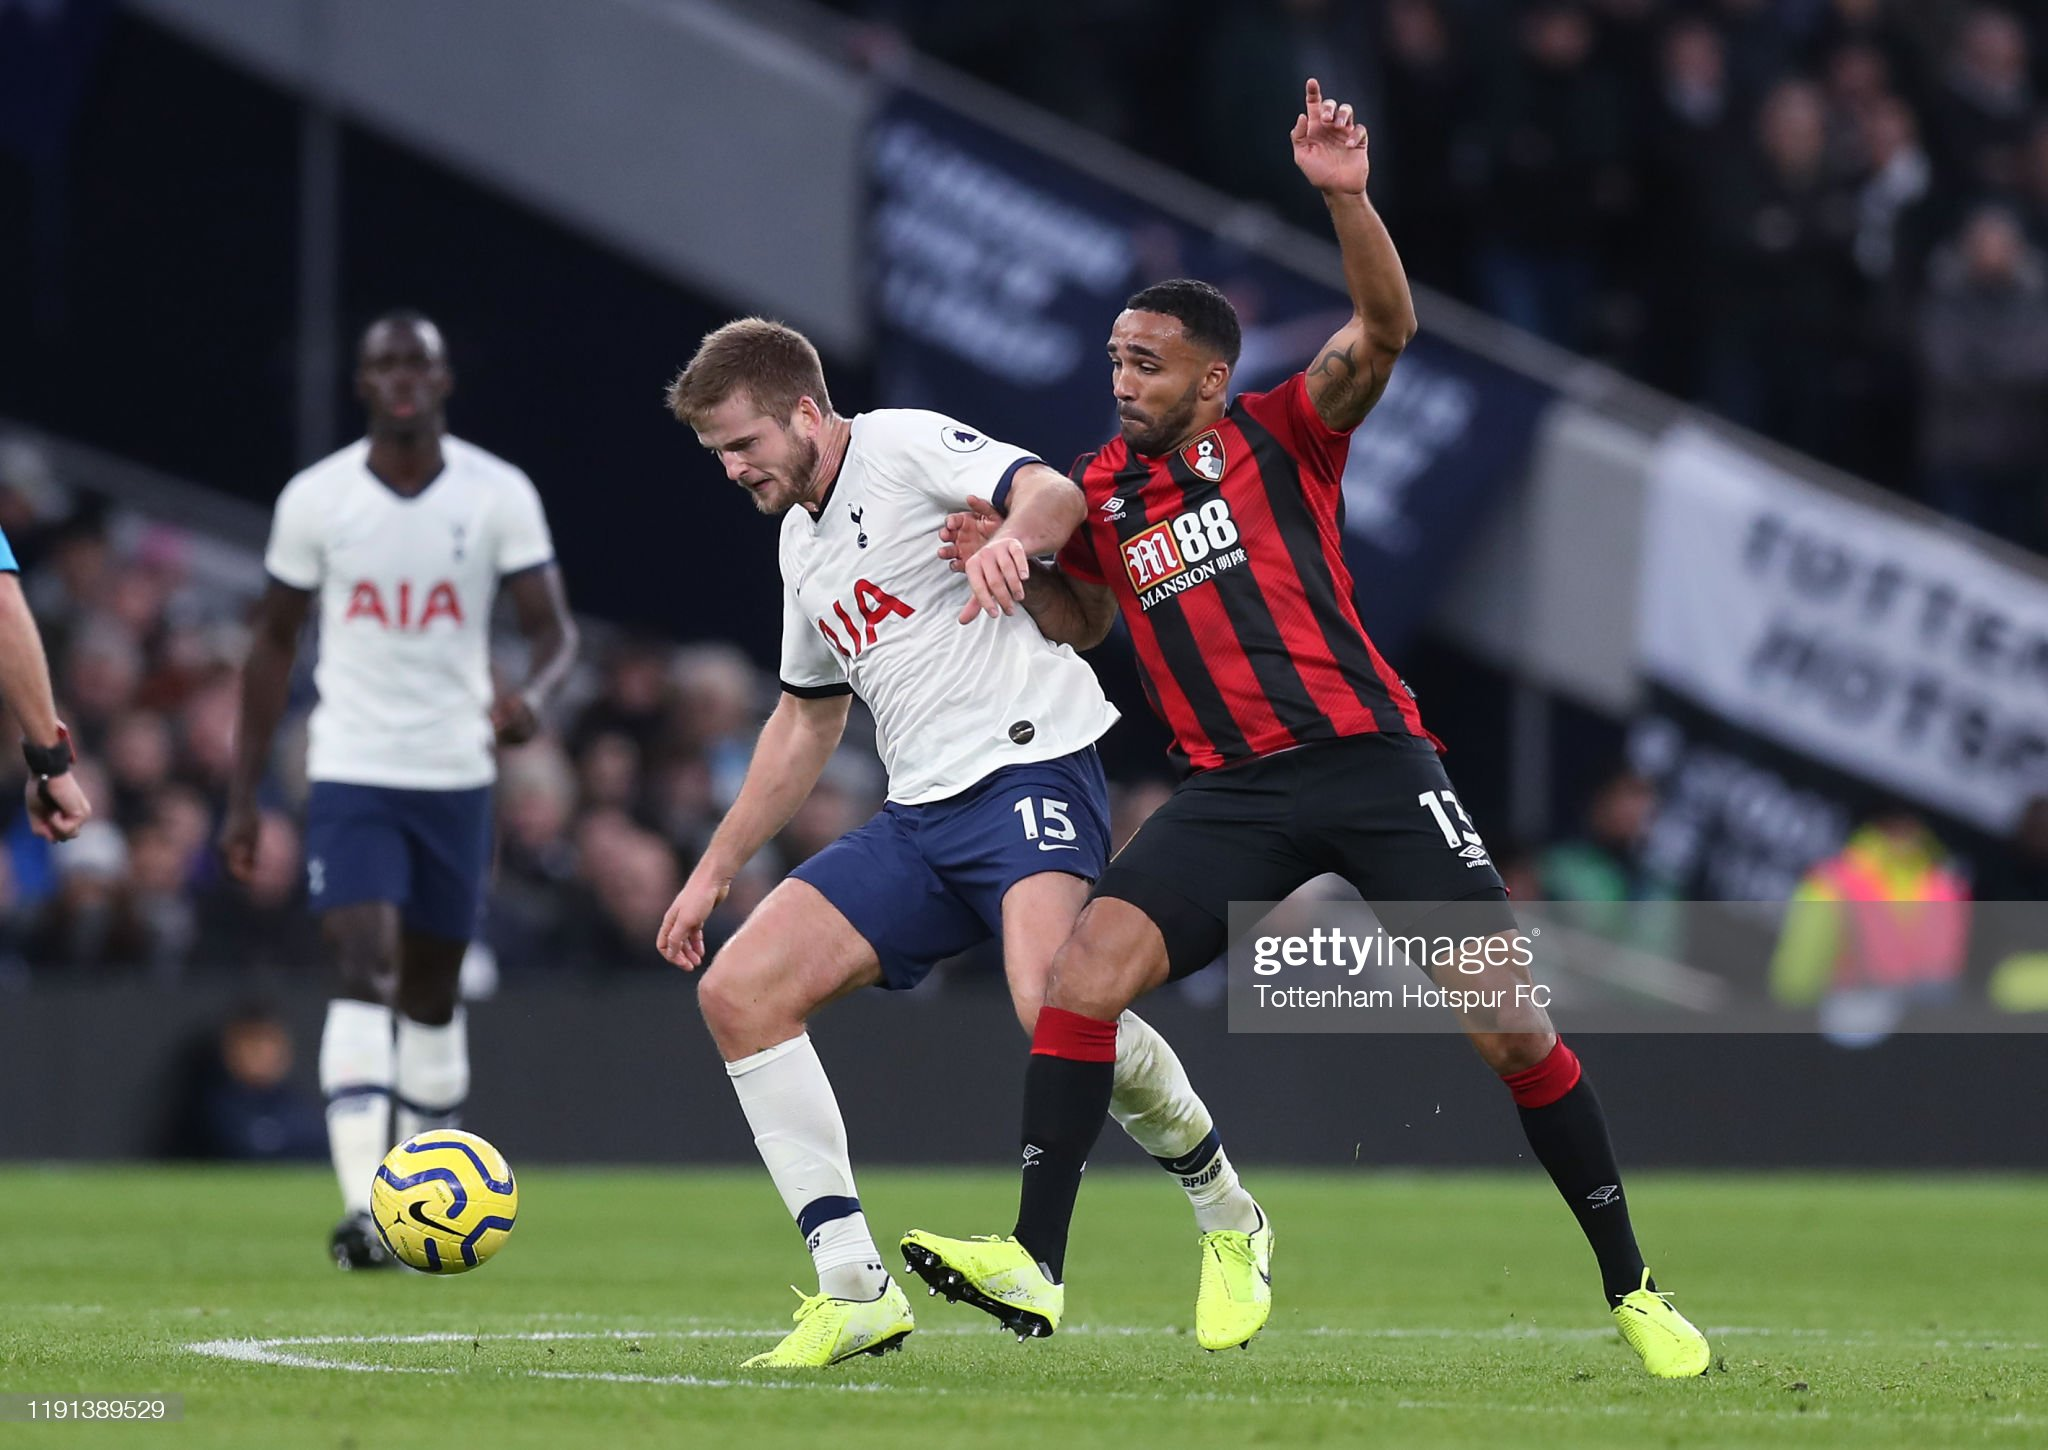 Bournemouth vs Tottenham Preview, prediction and odds